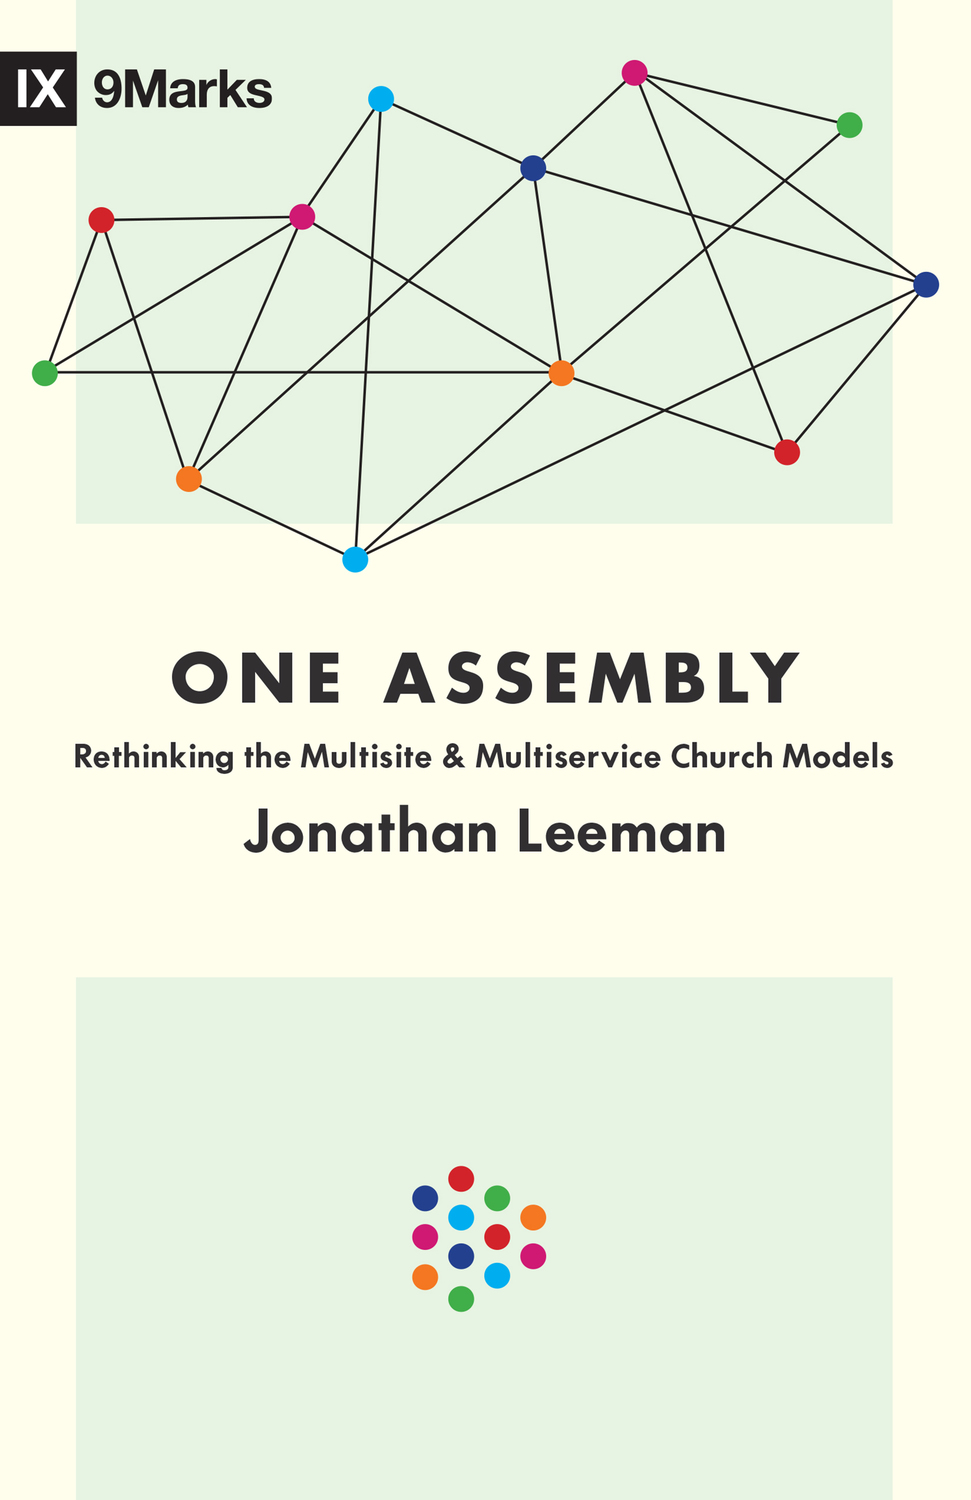 Image for One Assembly: Rethinking the Multisite and Multiservice Church Models (9Marks)